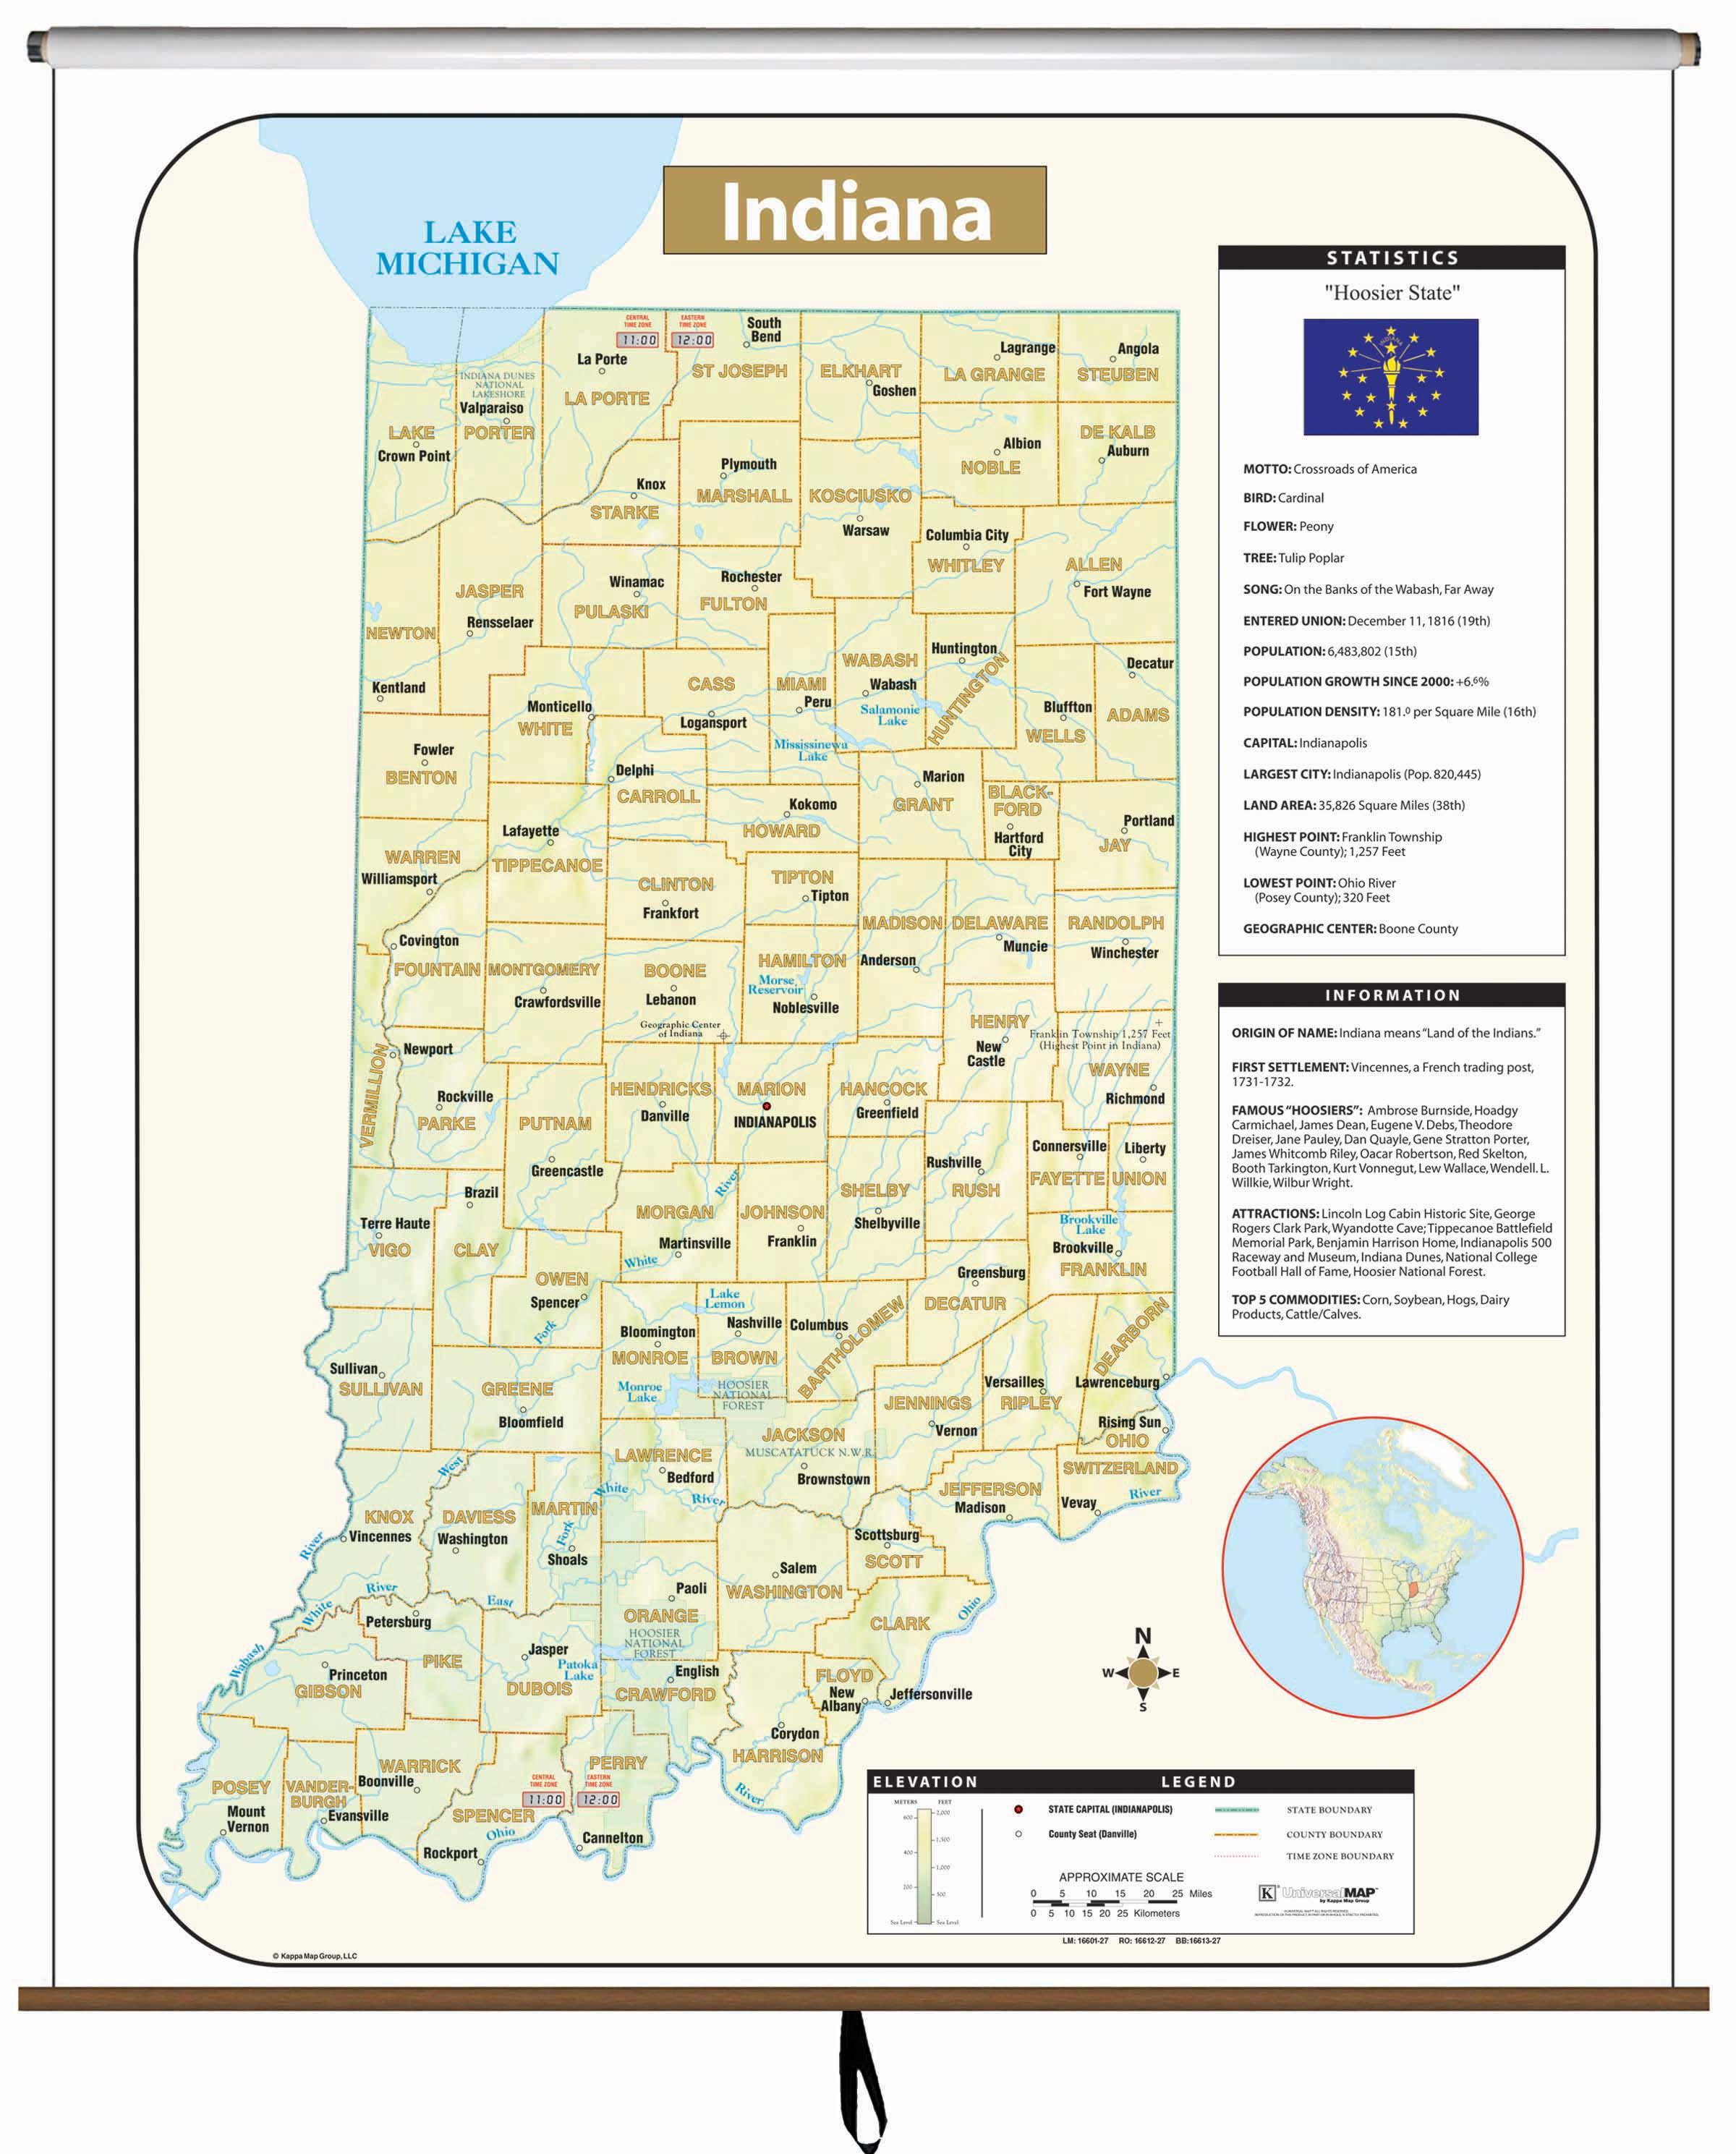 Indiana Large Scale Shaded Relief Wall Map – KAPPA MAP GROUP on florida wall map, indiana state house map, indiana state world map, indiana state on us map, indiana state political map, indiana state travel map, indiana state road map, california wall map, new orleans wall map, indiana state township map, indiana state usa map, north carolina wall map,